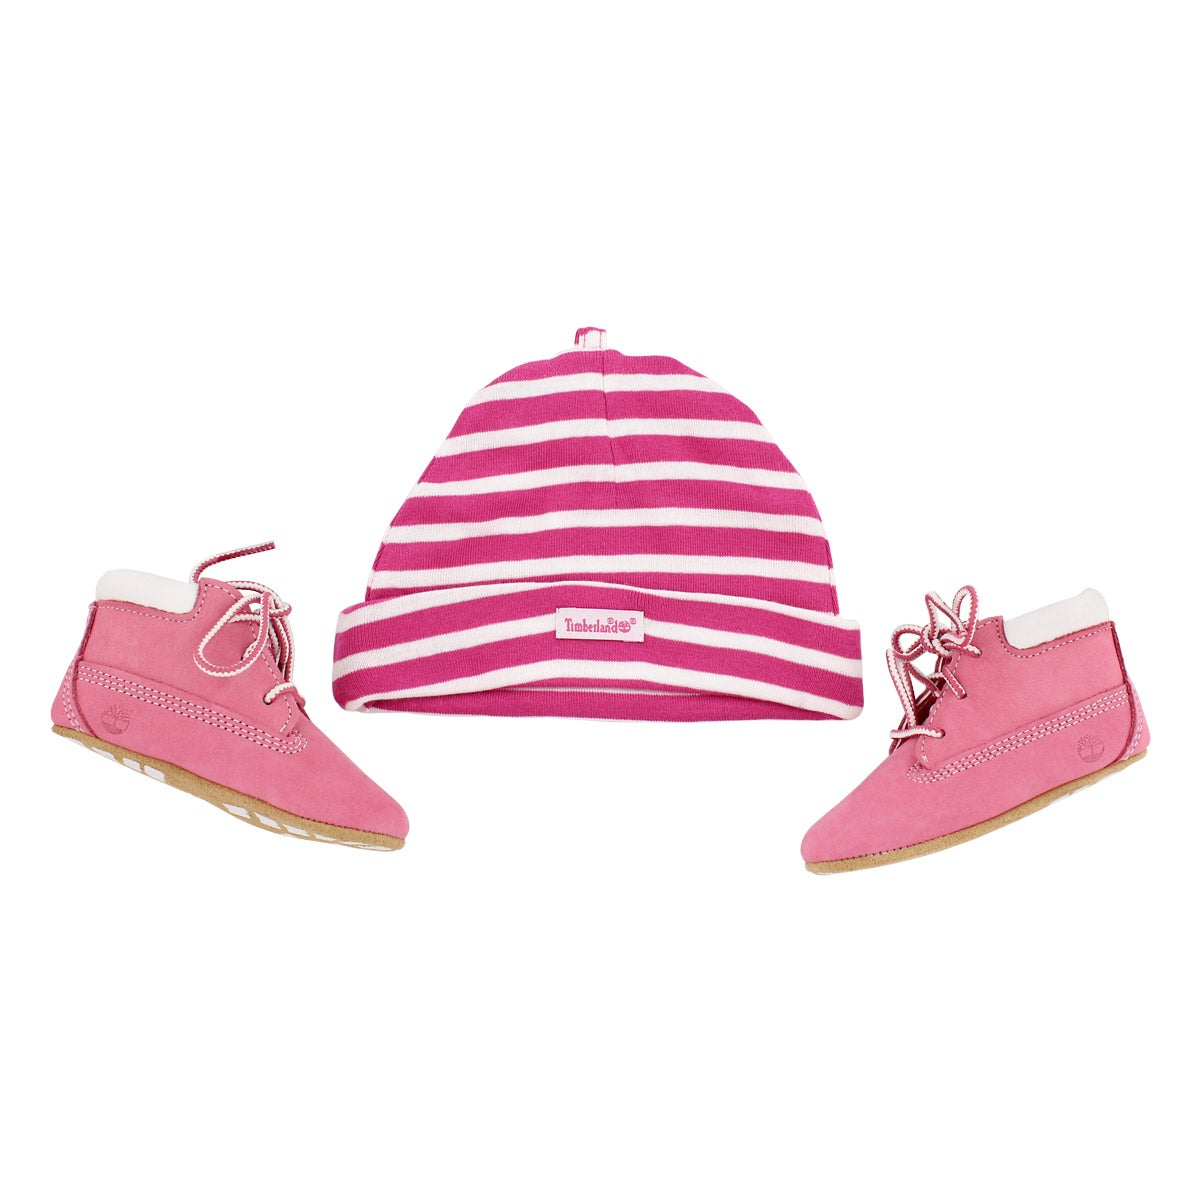 Infs pink Crib Bootie with hat